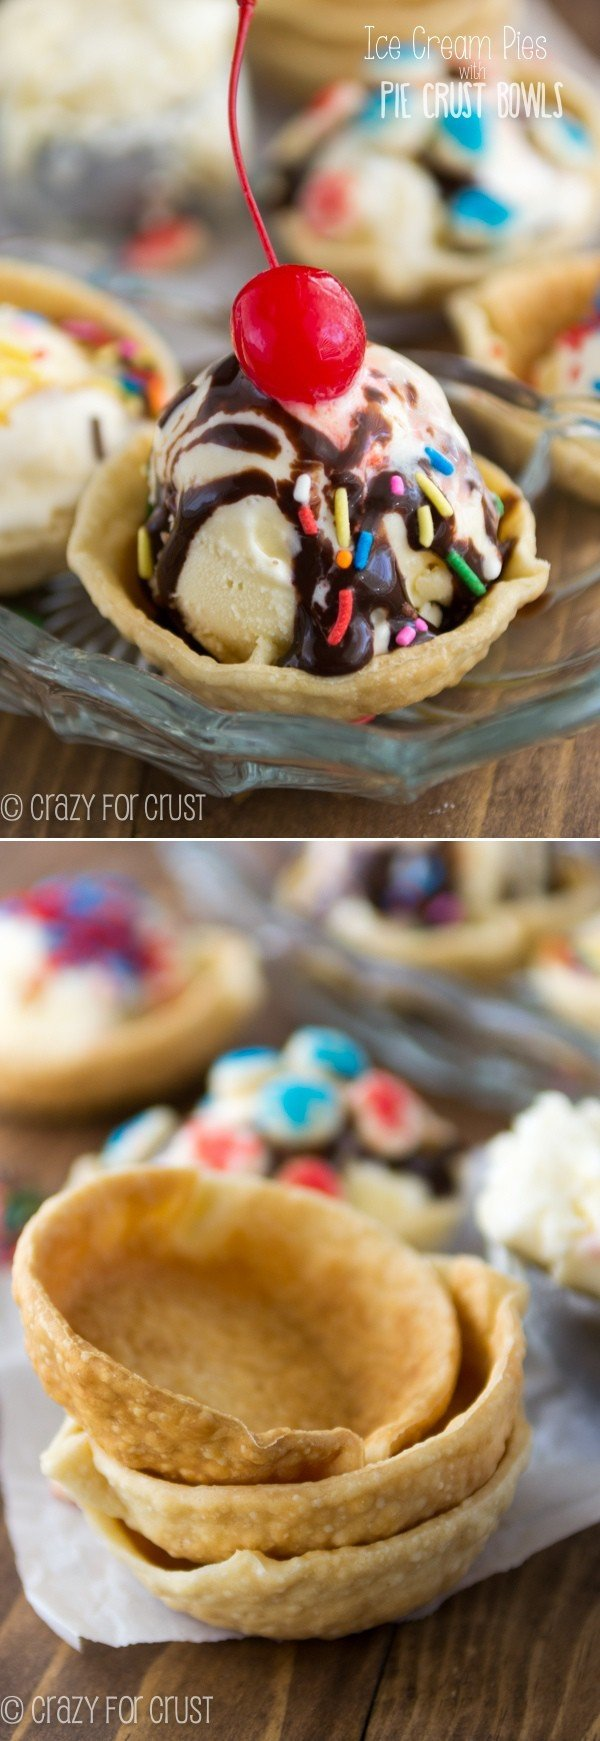 One ingredient pie crust ice cream bowls - perfect to make ice cream pie!